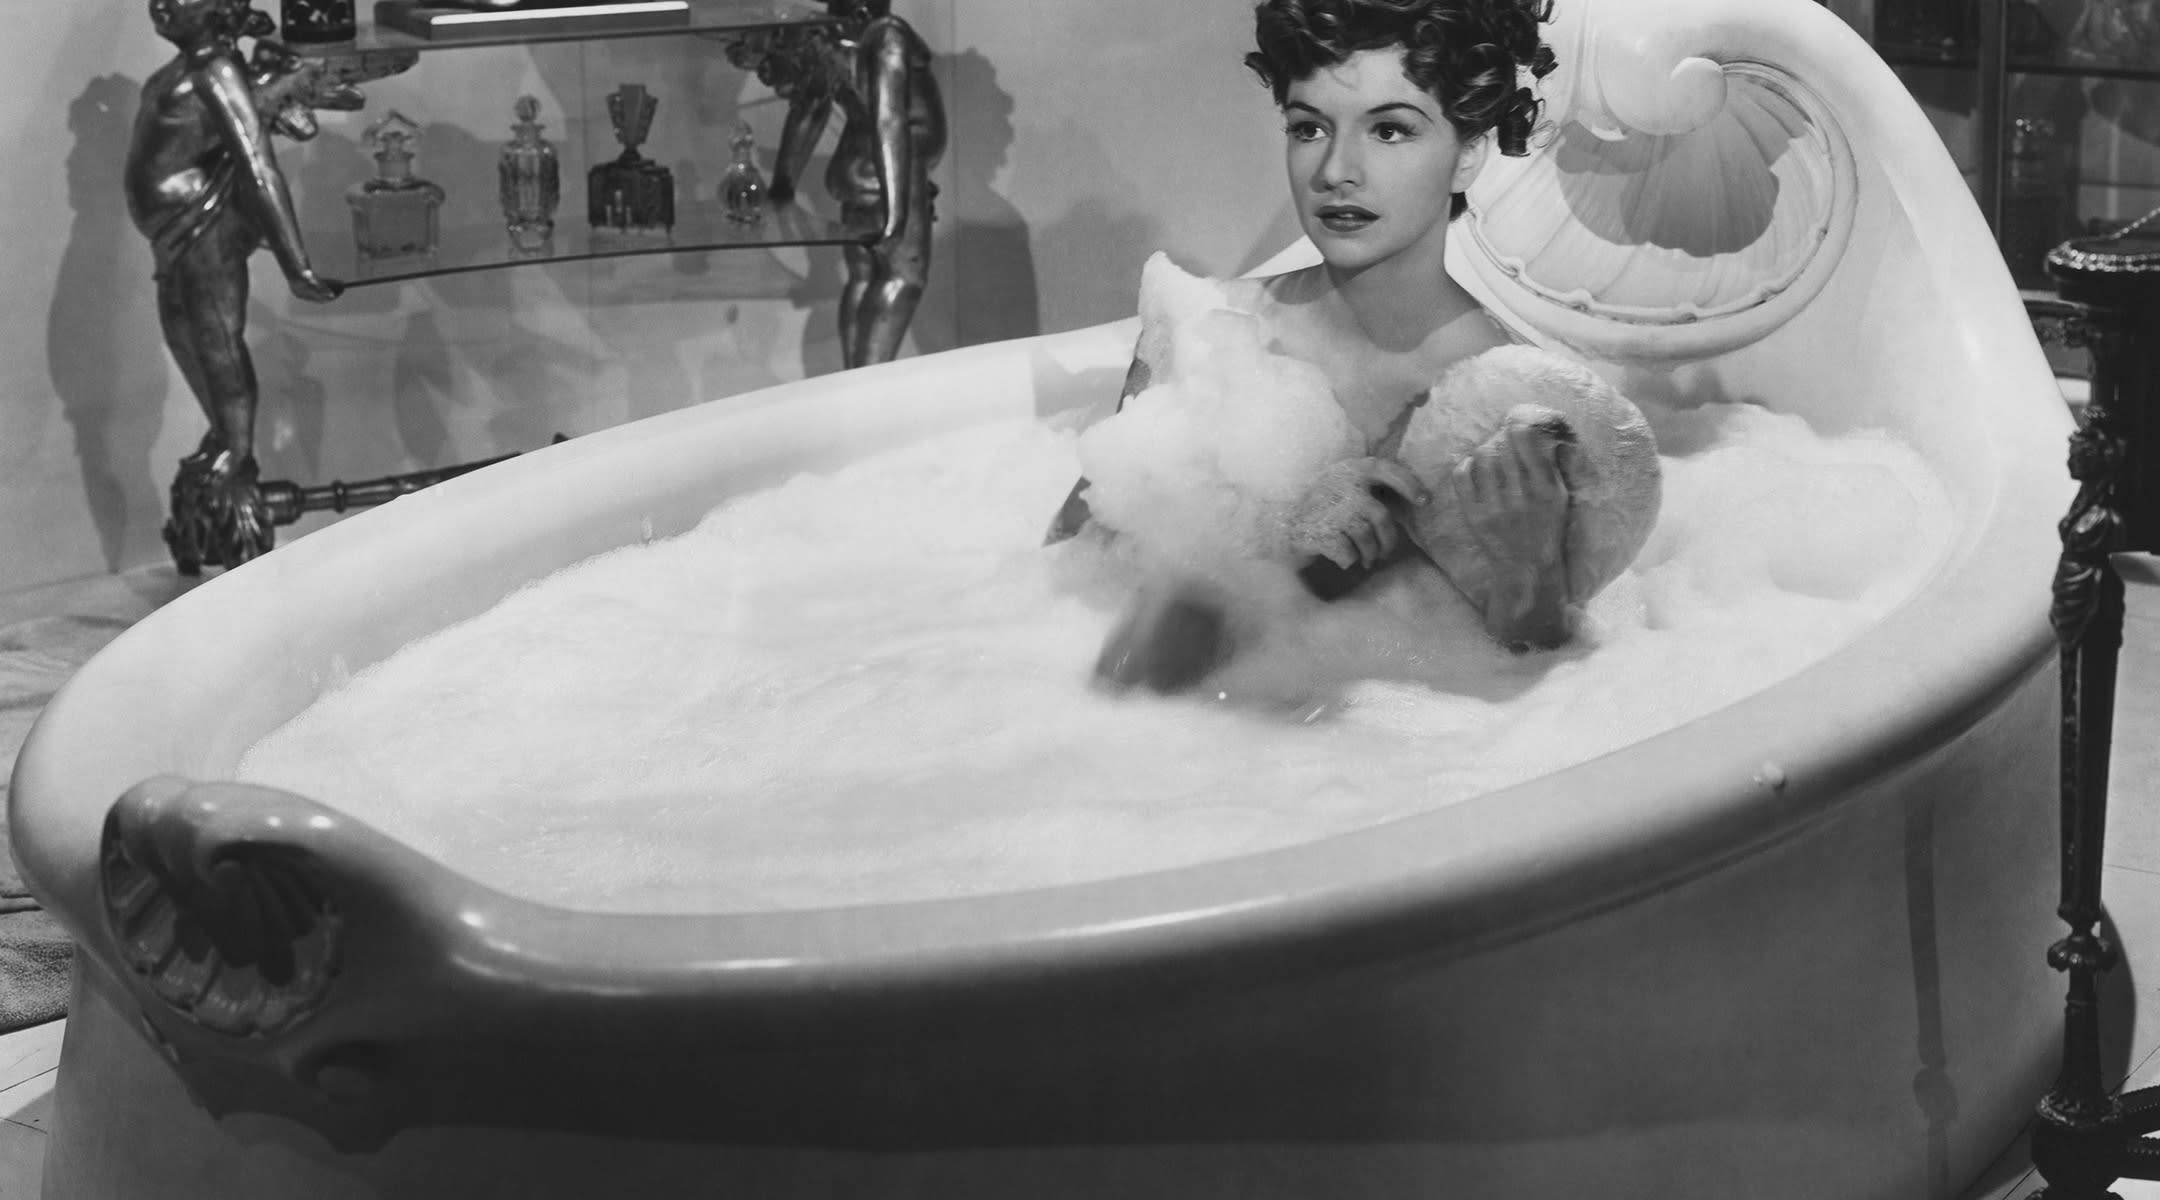 retro photo of woman in bubble bath